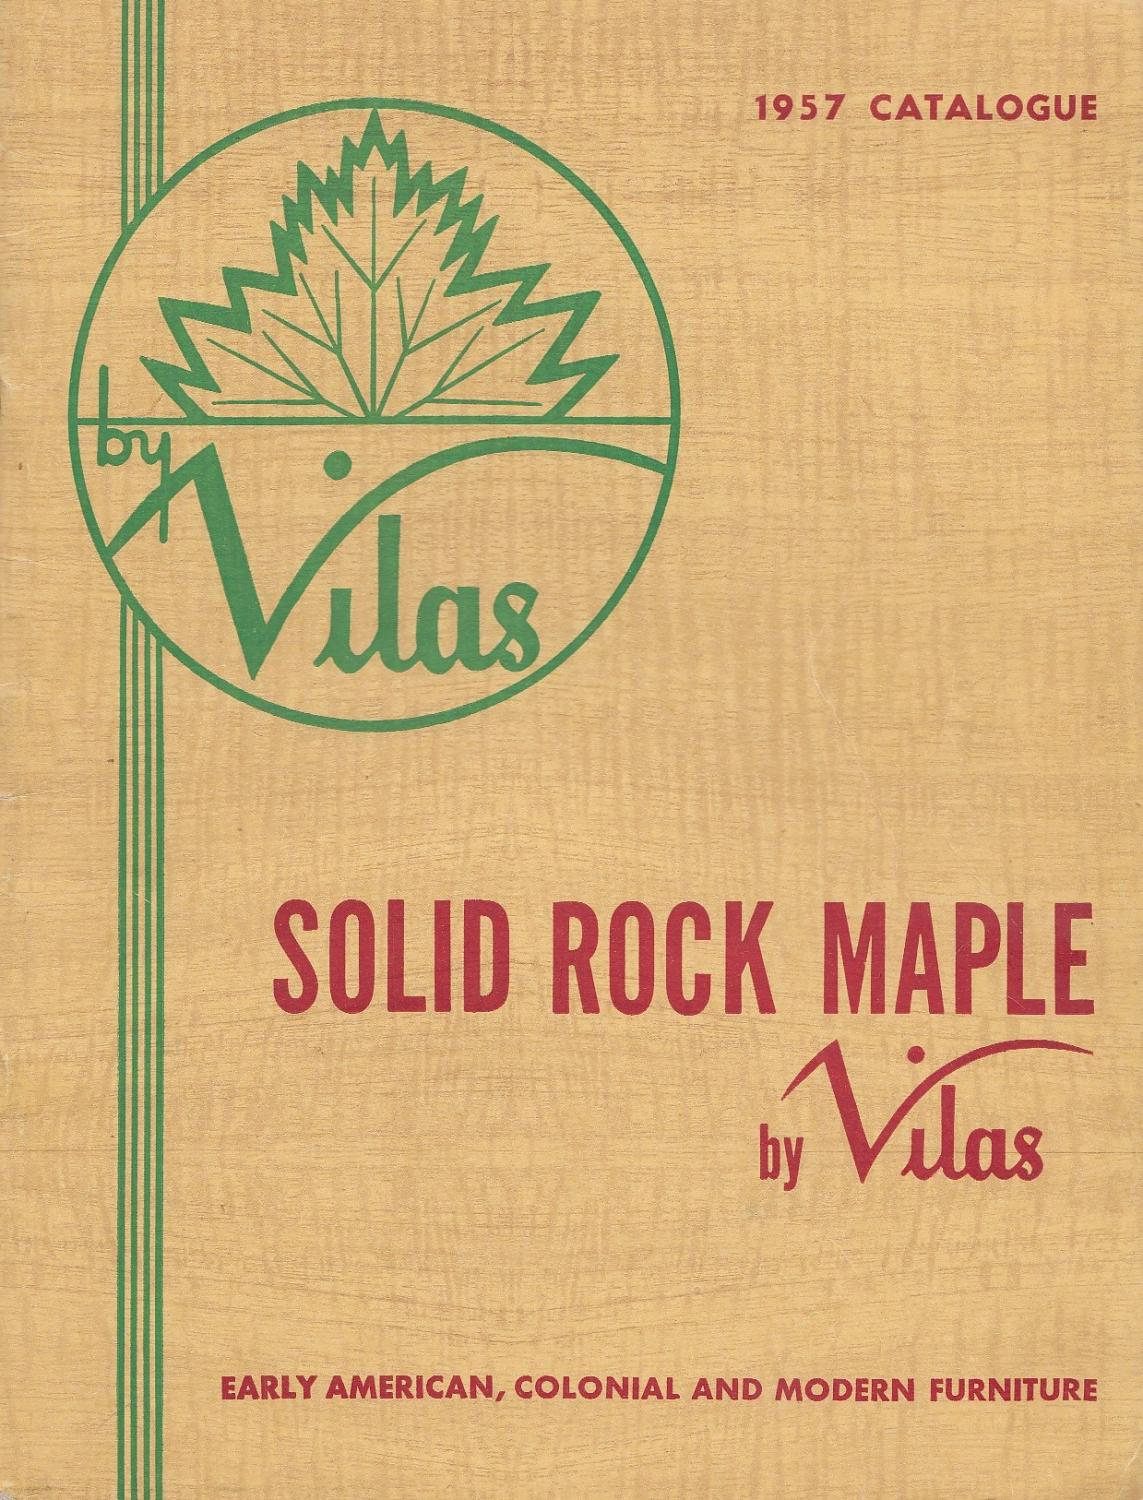 Solid Rock Maple By Vilas 1957 Catalogue Early American, Colonial And Modern  Furniture: Vilas